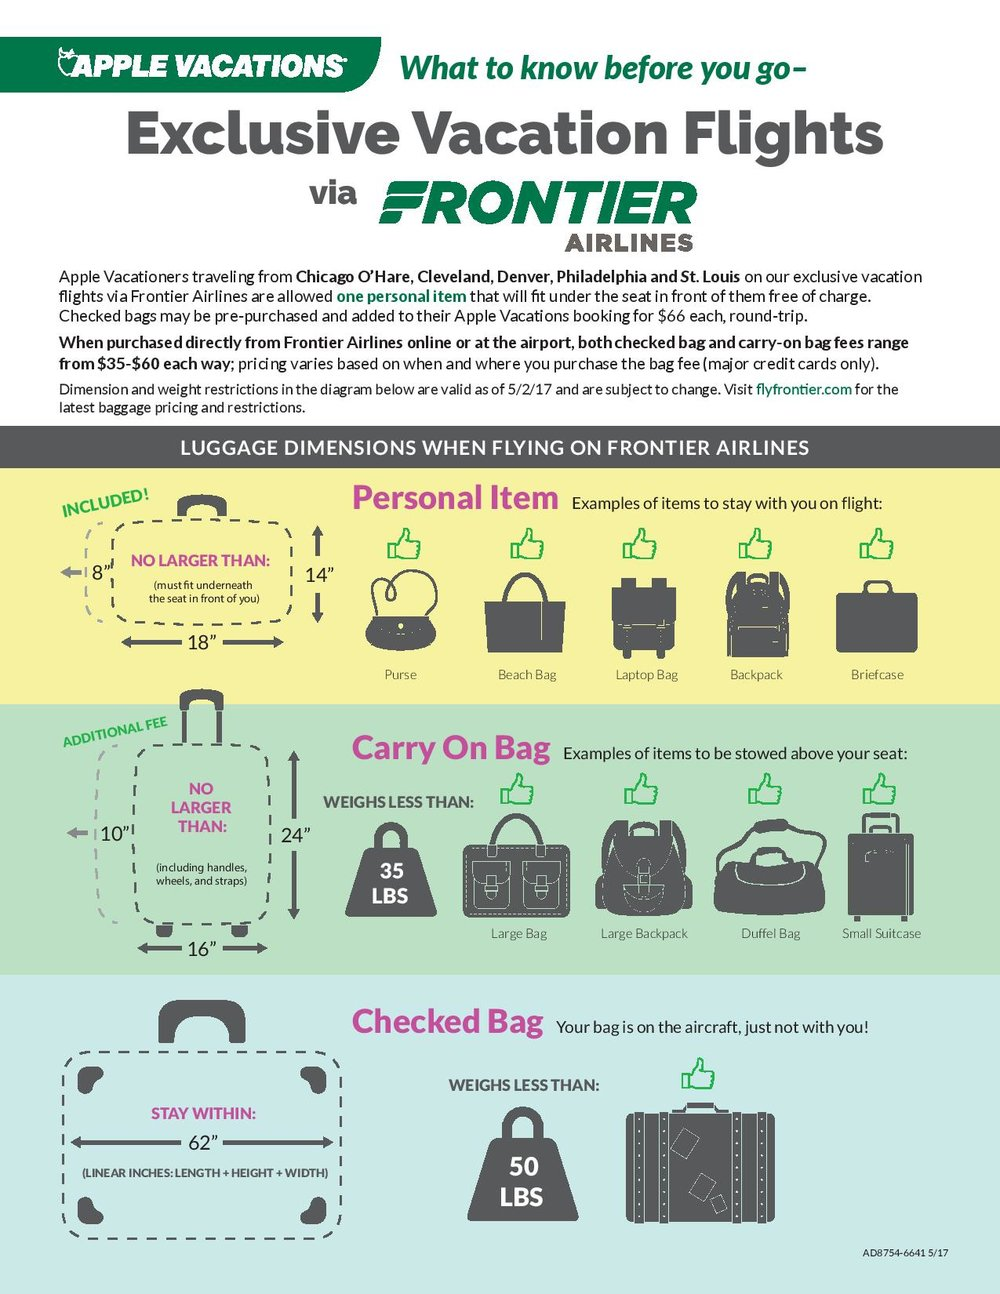 Frontier Airlines Baggage dimensions as of 5.2017